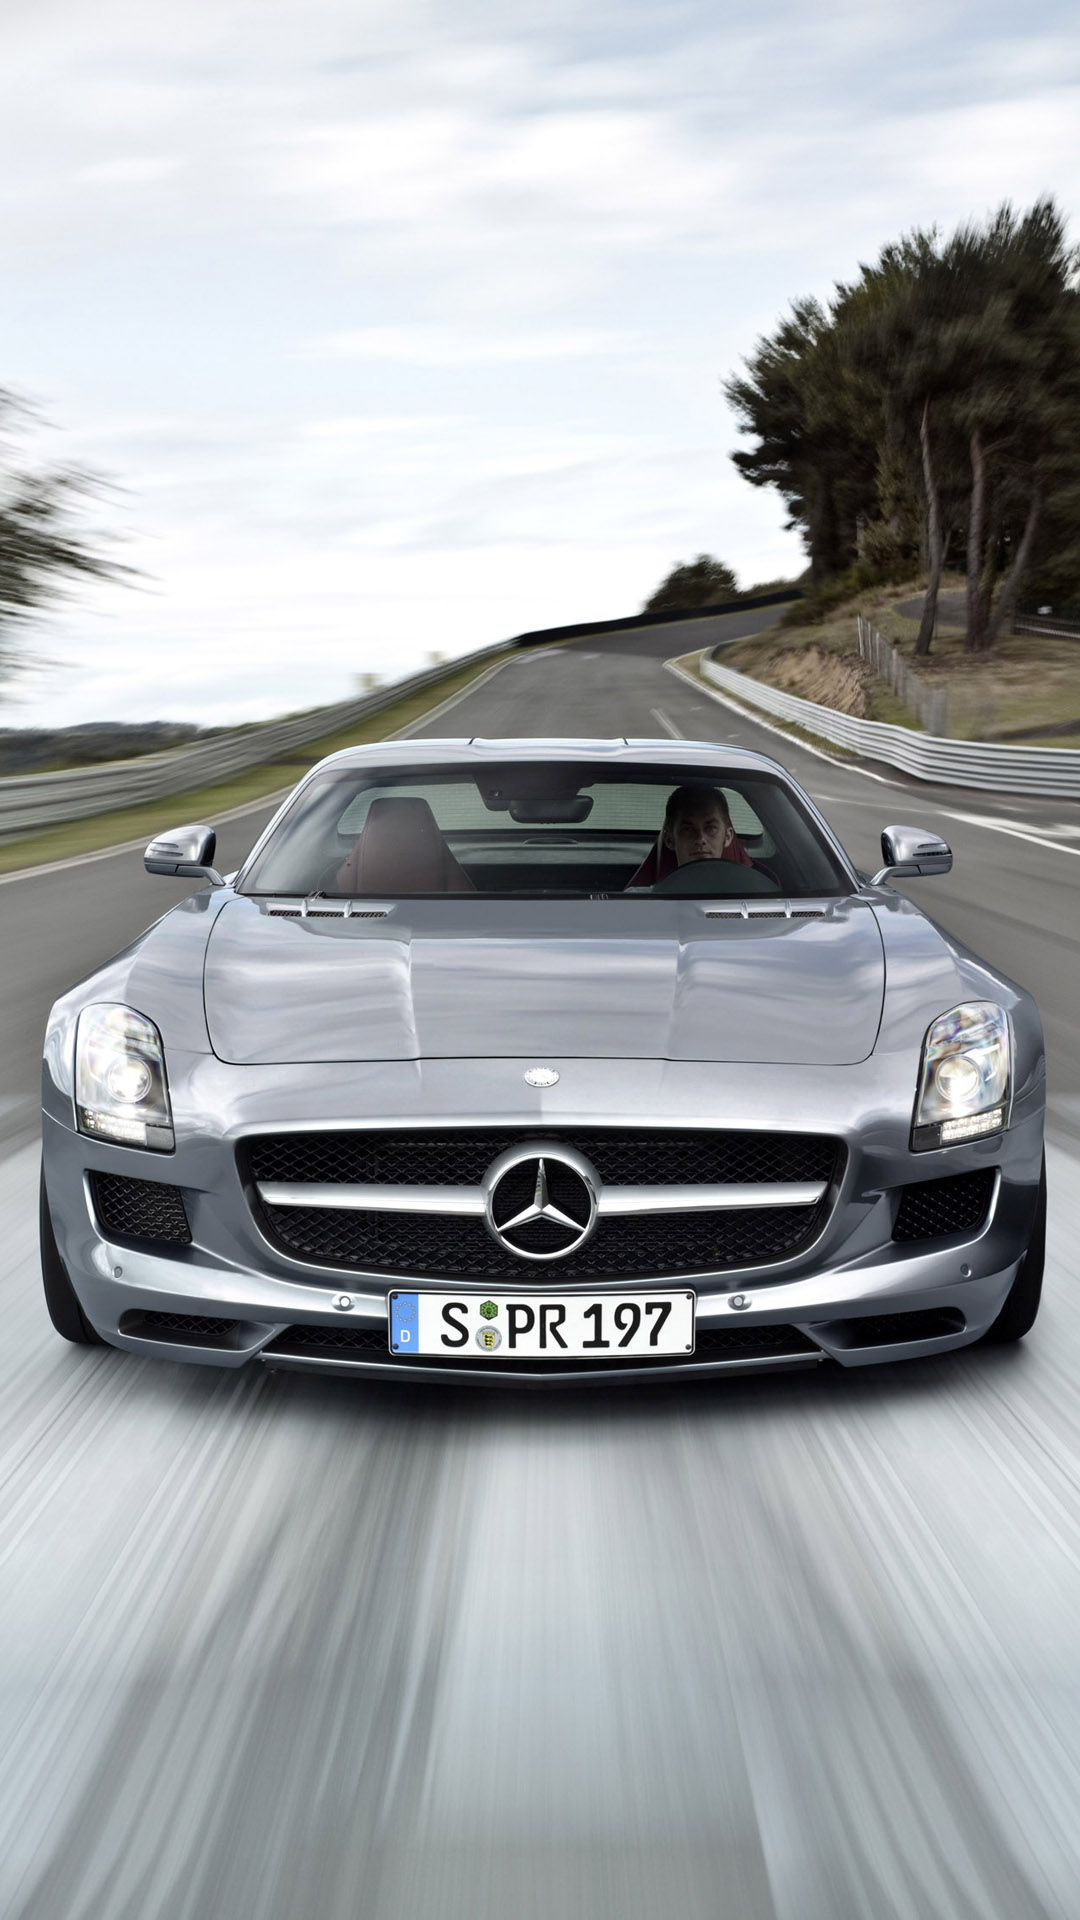 Mercedes Benz Sls Amg Best Htc One Wallpapers Free And Easy To Download